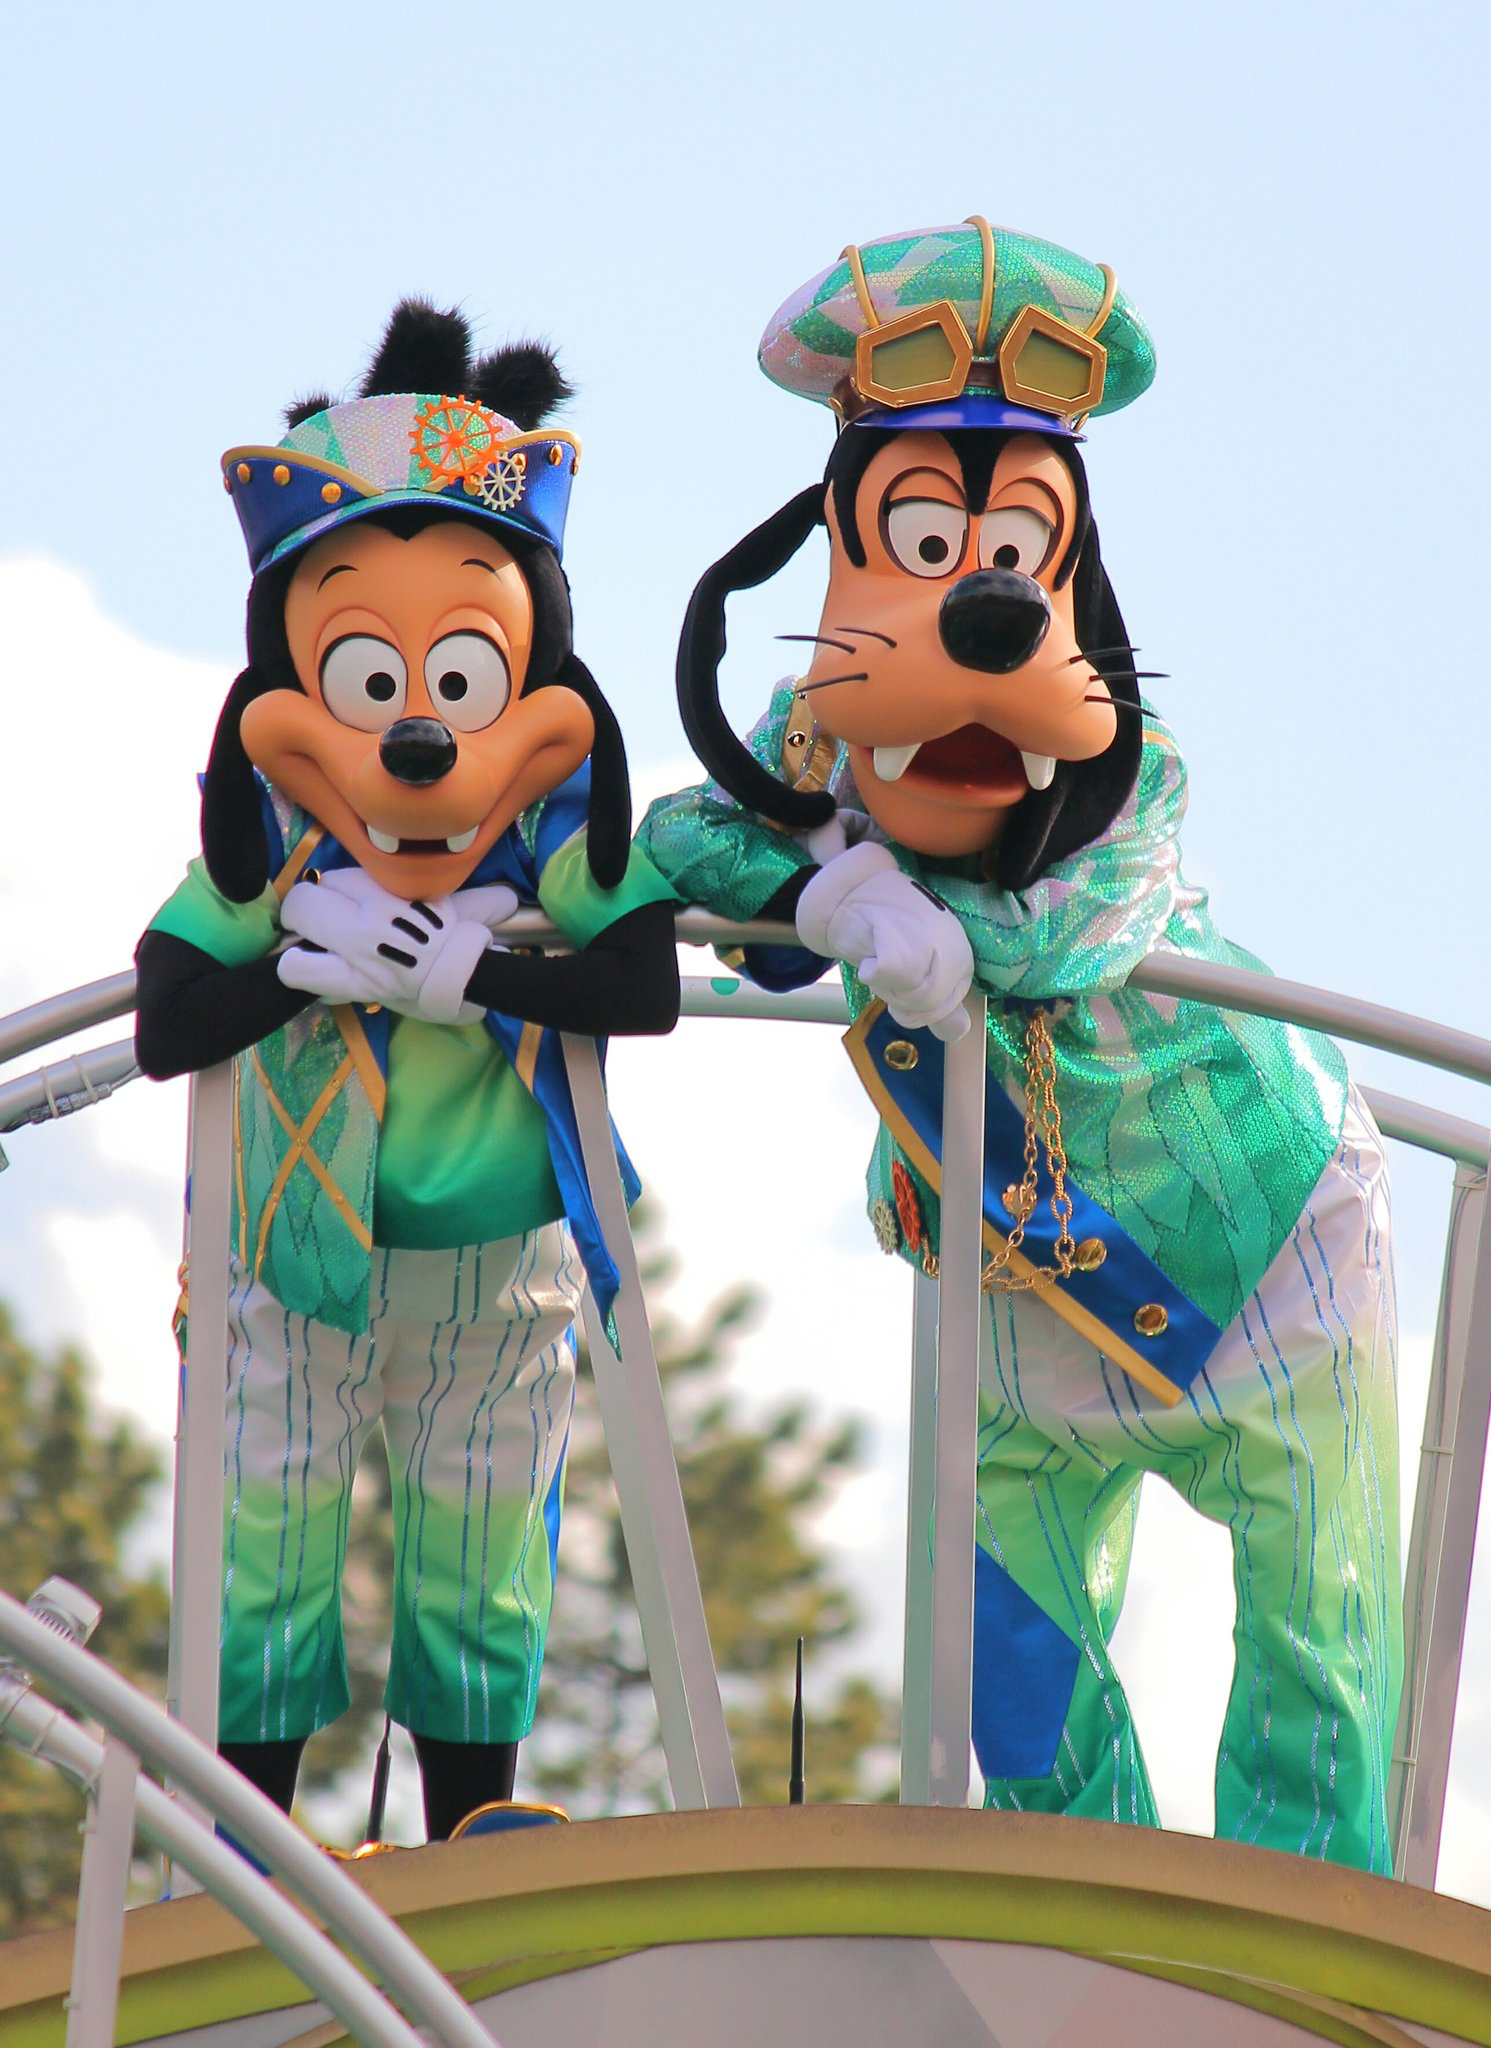 Goofy and his son, Max